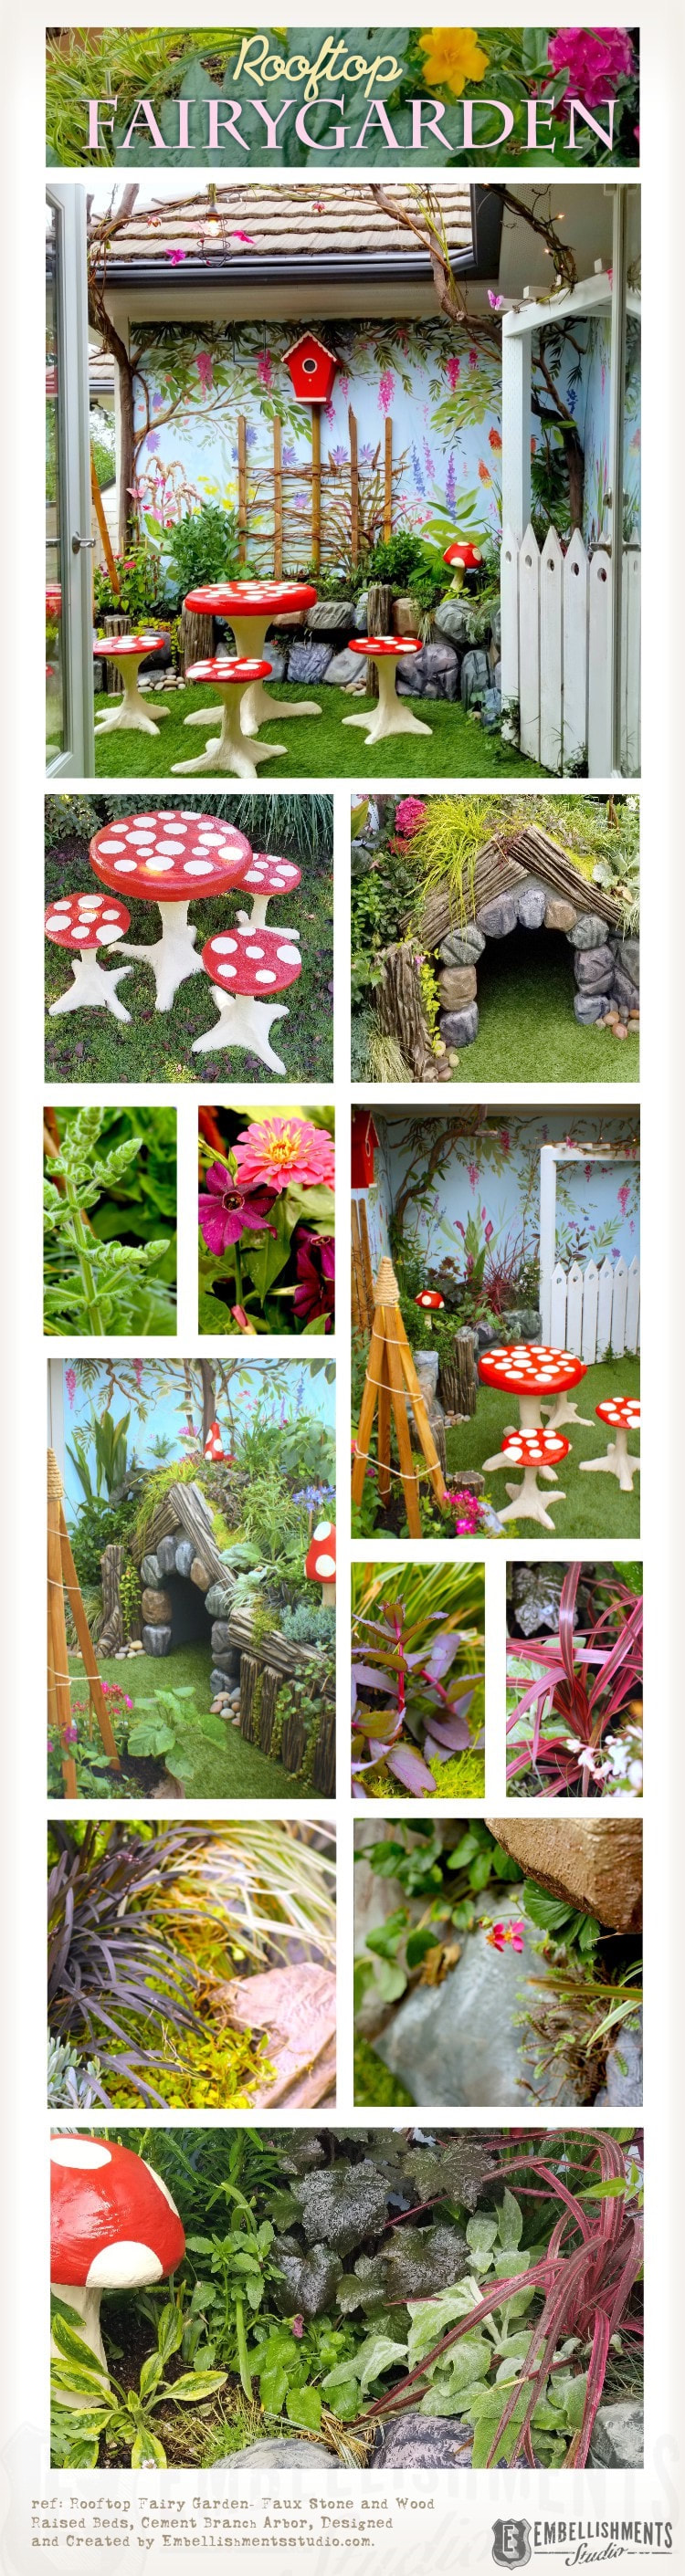 Rooftop Fairy Garden for Kids designed with Mushroom furniture, hobbit-hole doghouse and plenty of fairy and fauna luring plants.